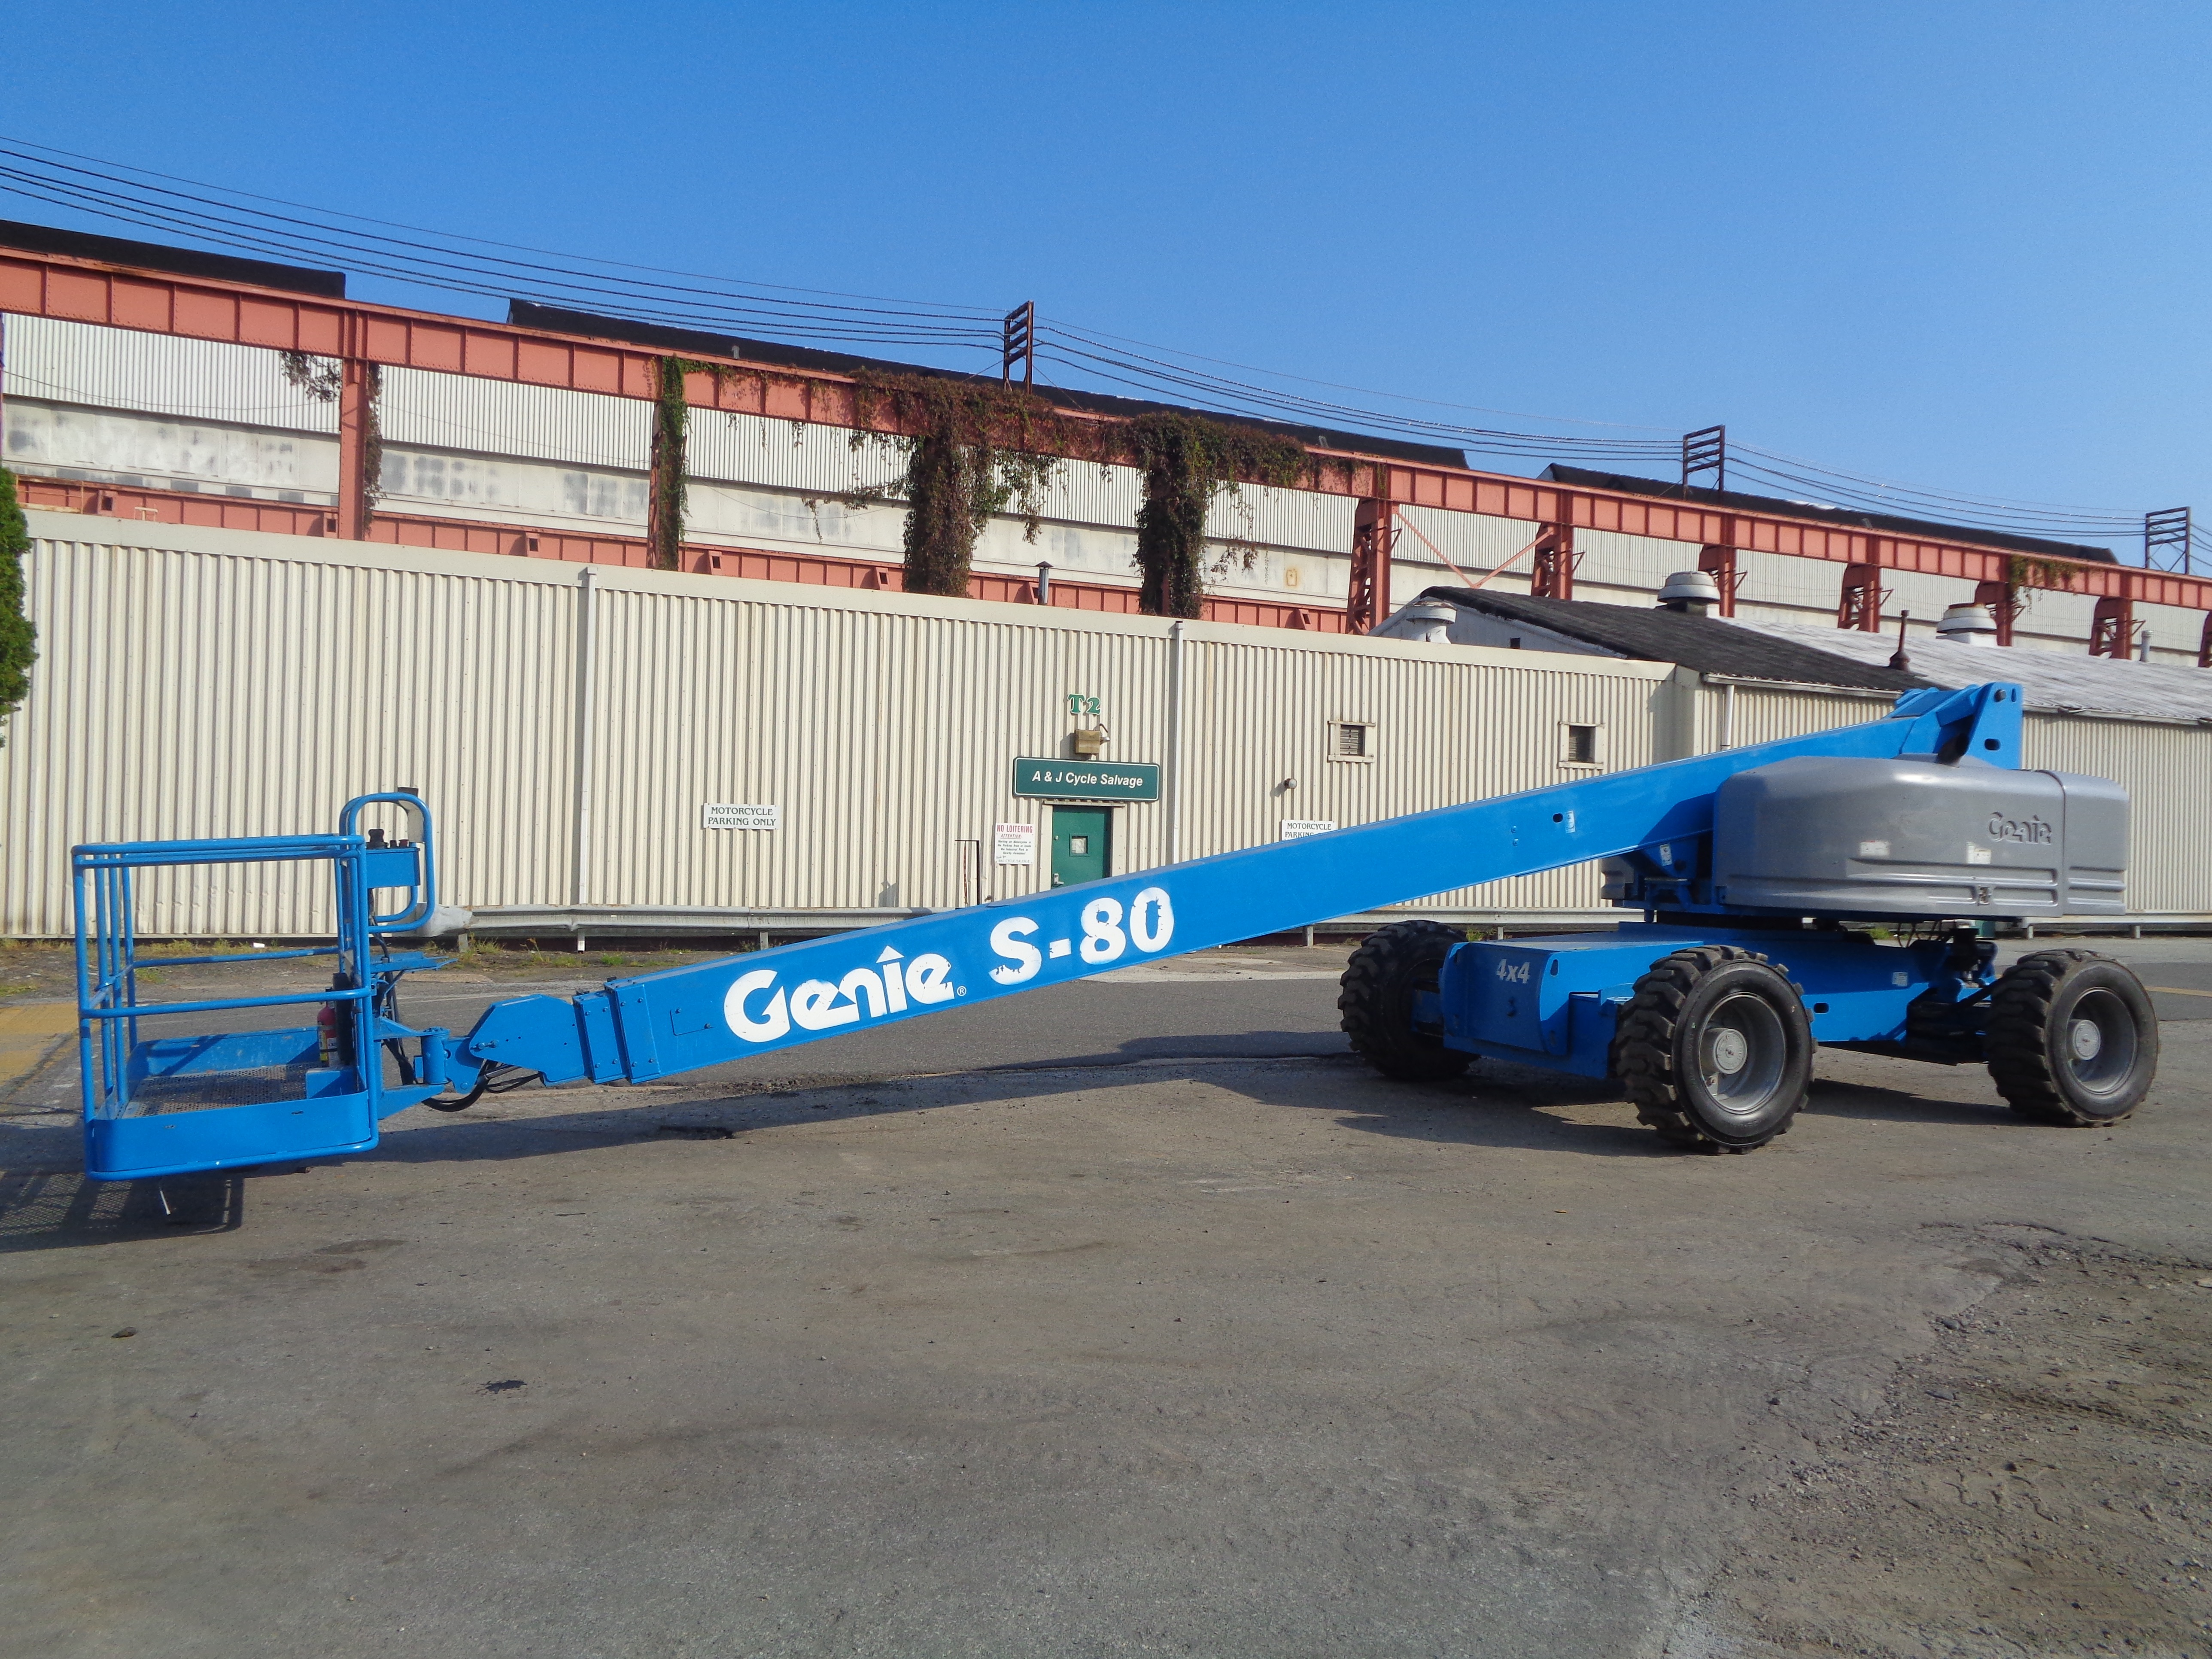 Genie S80 80ft Boom Lift - Image 3 of 22